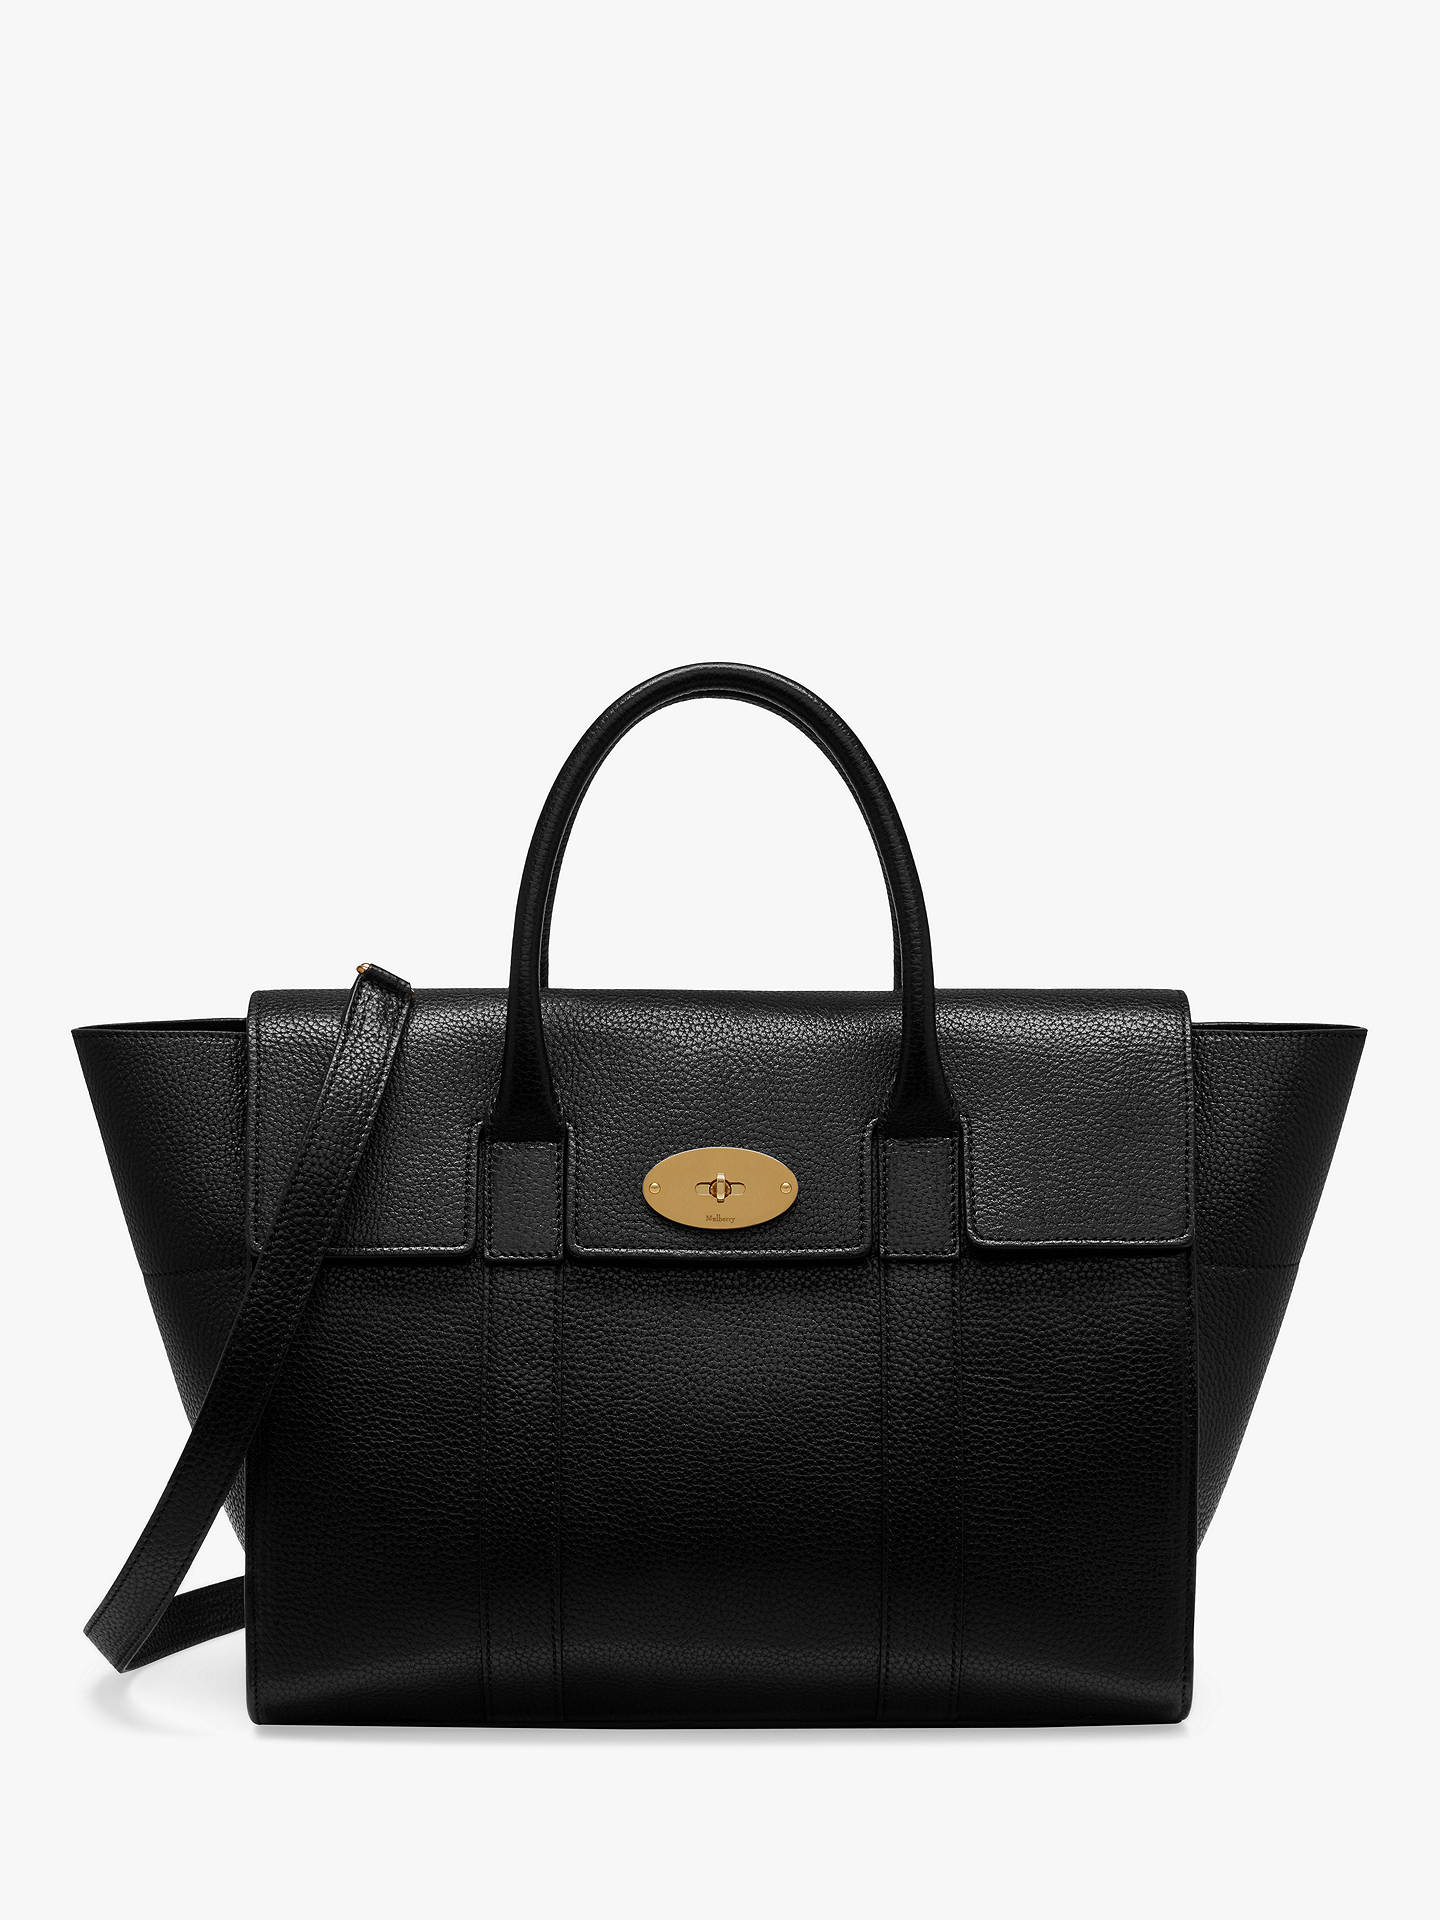 342cfe81e5 Buy Mulberry Bayswater with Strap Small Classic Grain Leather Bag